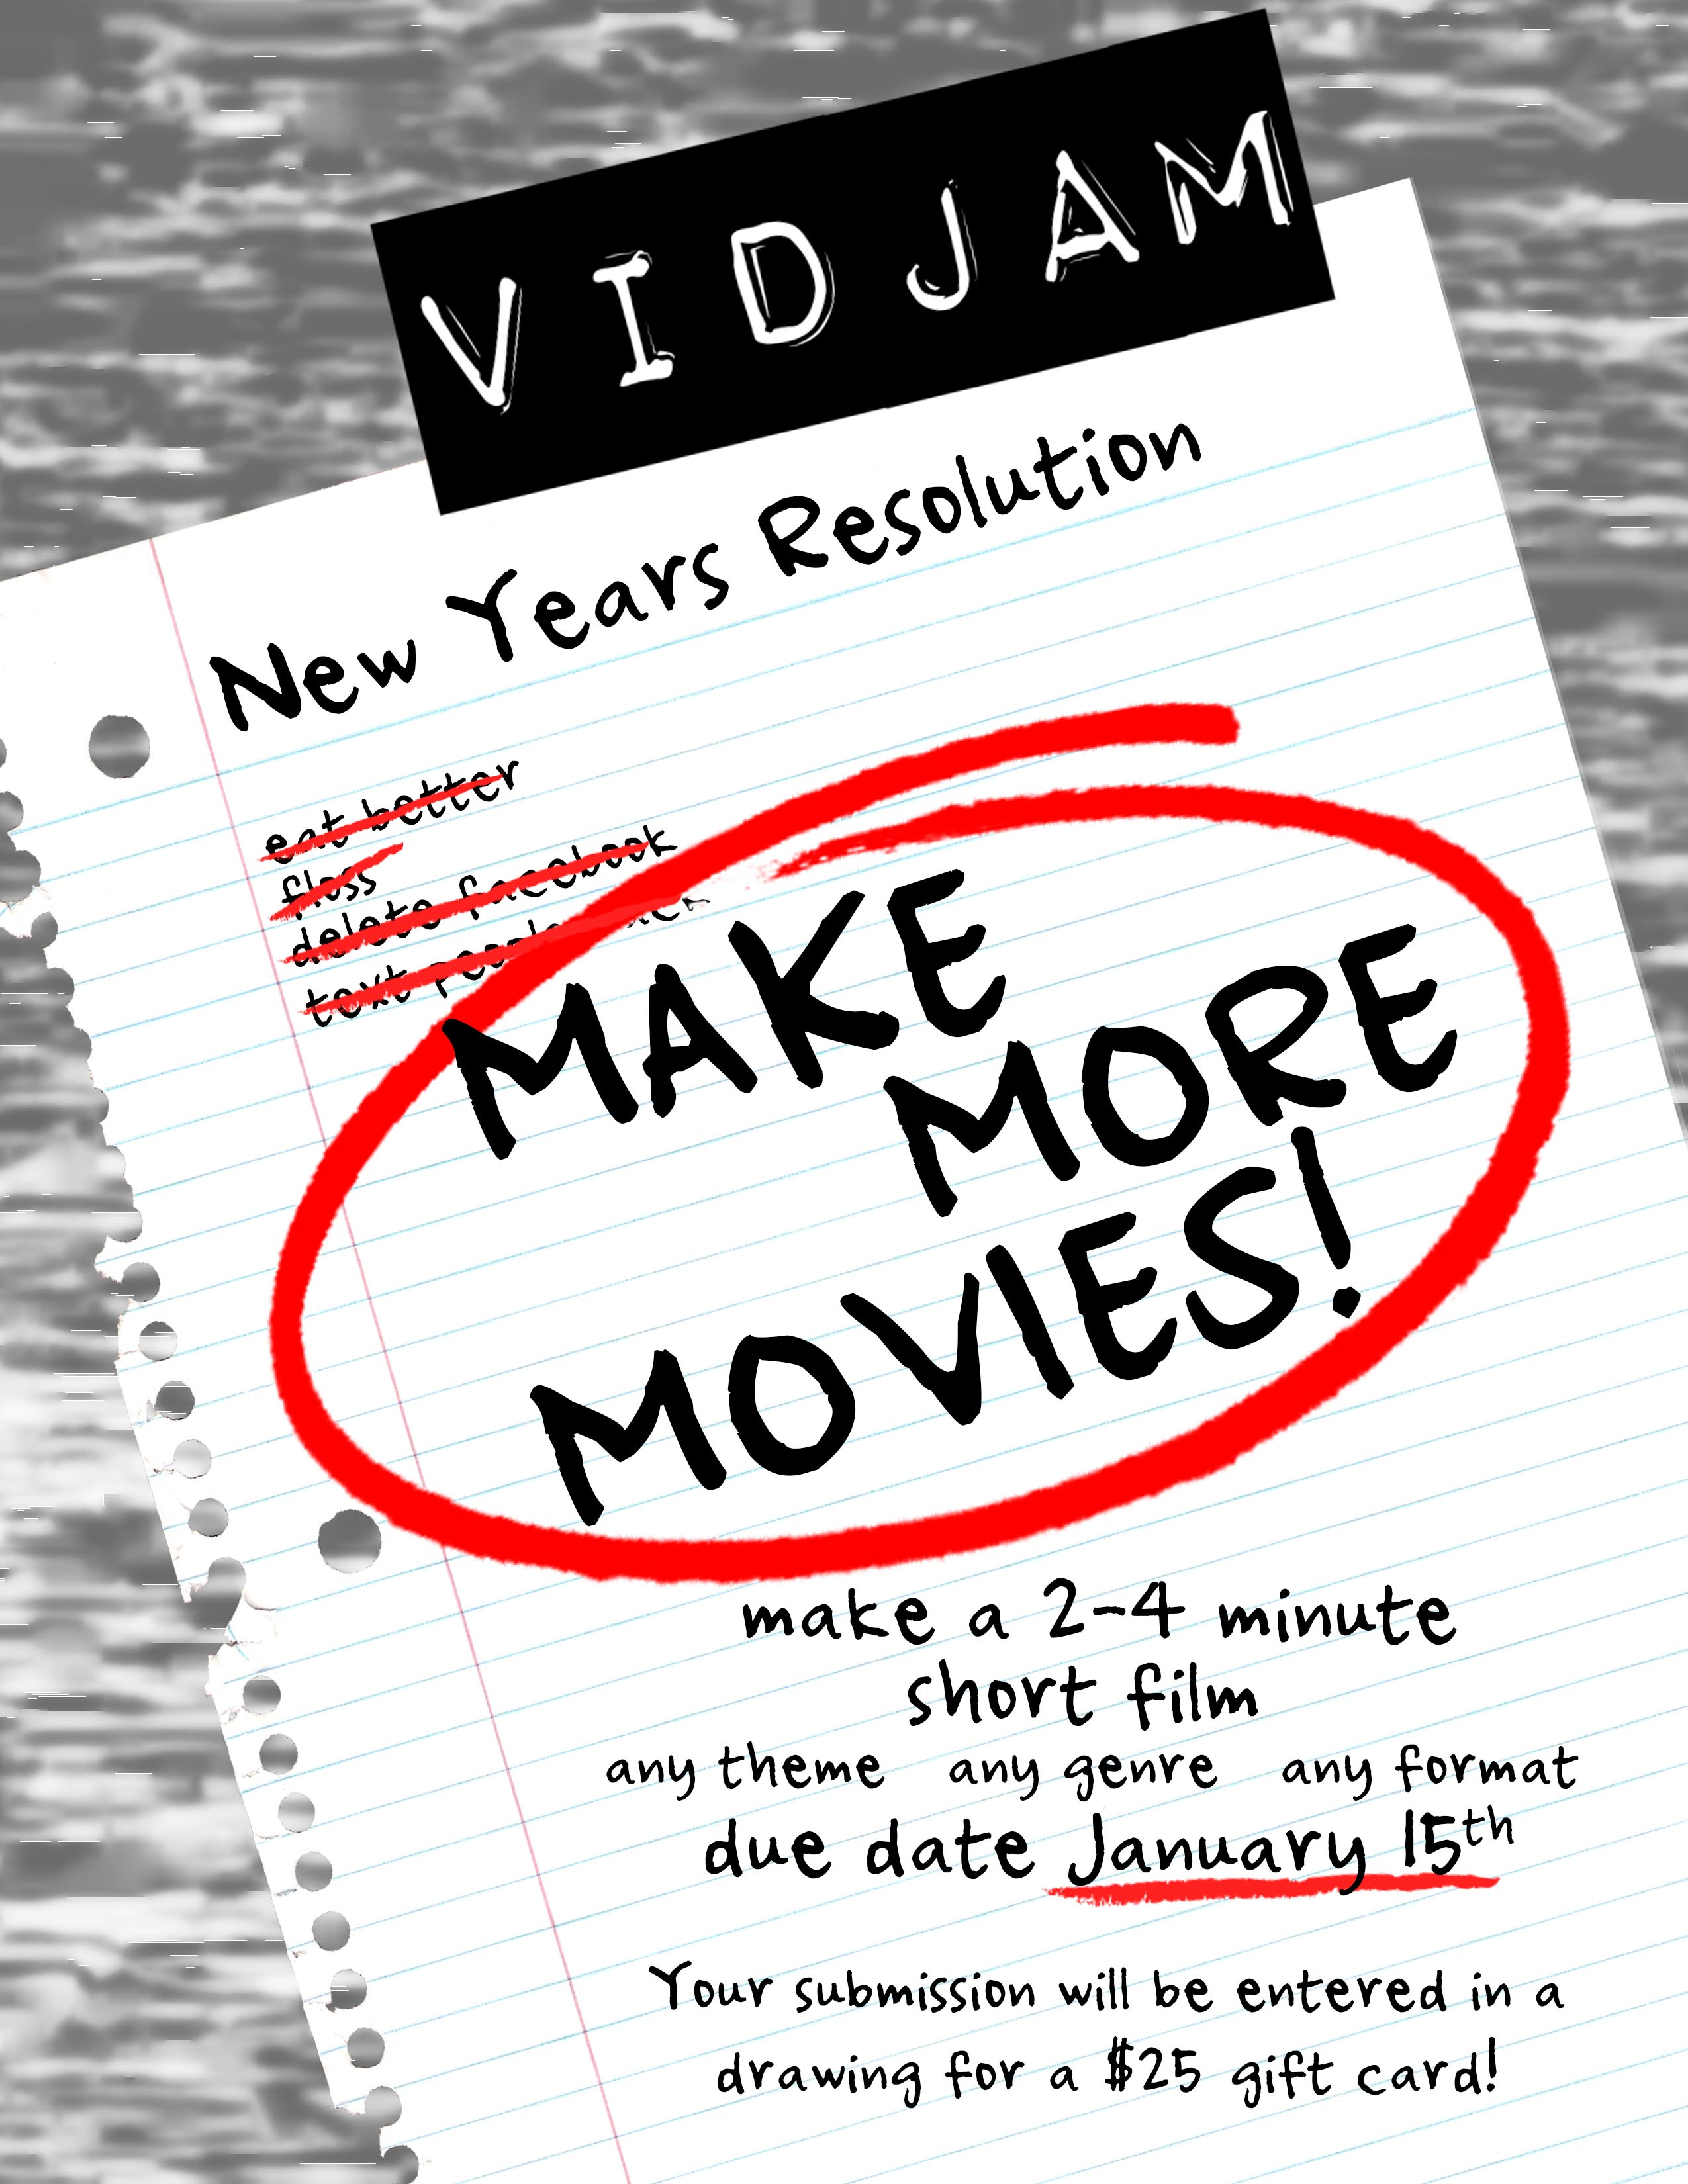 New Year's Resolution? MAKE MORE MOVIES!